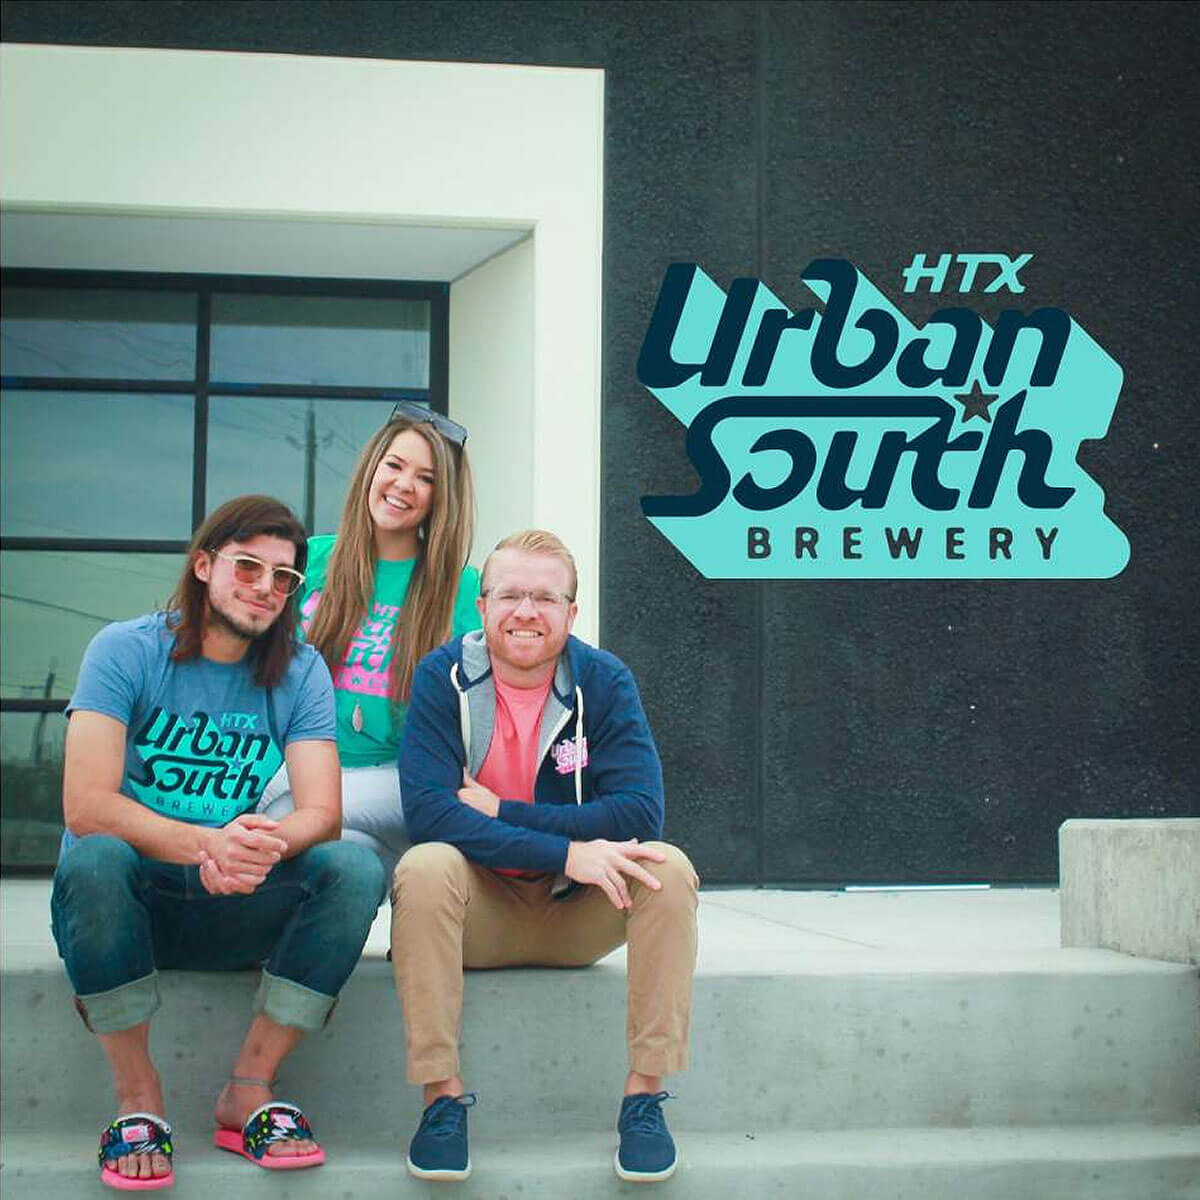 The team leading Urban South Brewery HTX is R&D Brewer Justin Slanina, his wife and Taproom and Marketing Manager Marin Slanina, and General Manager and Brewer Dave Ohmer